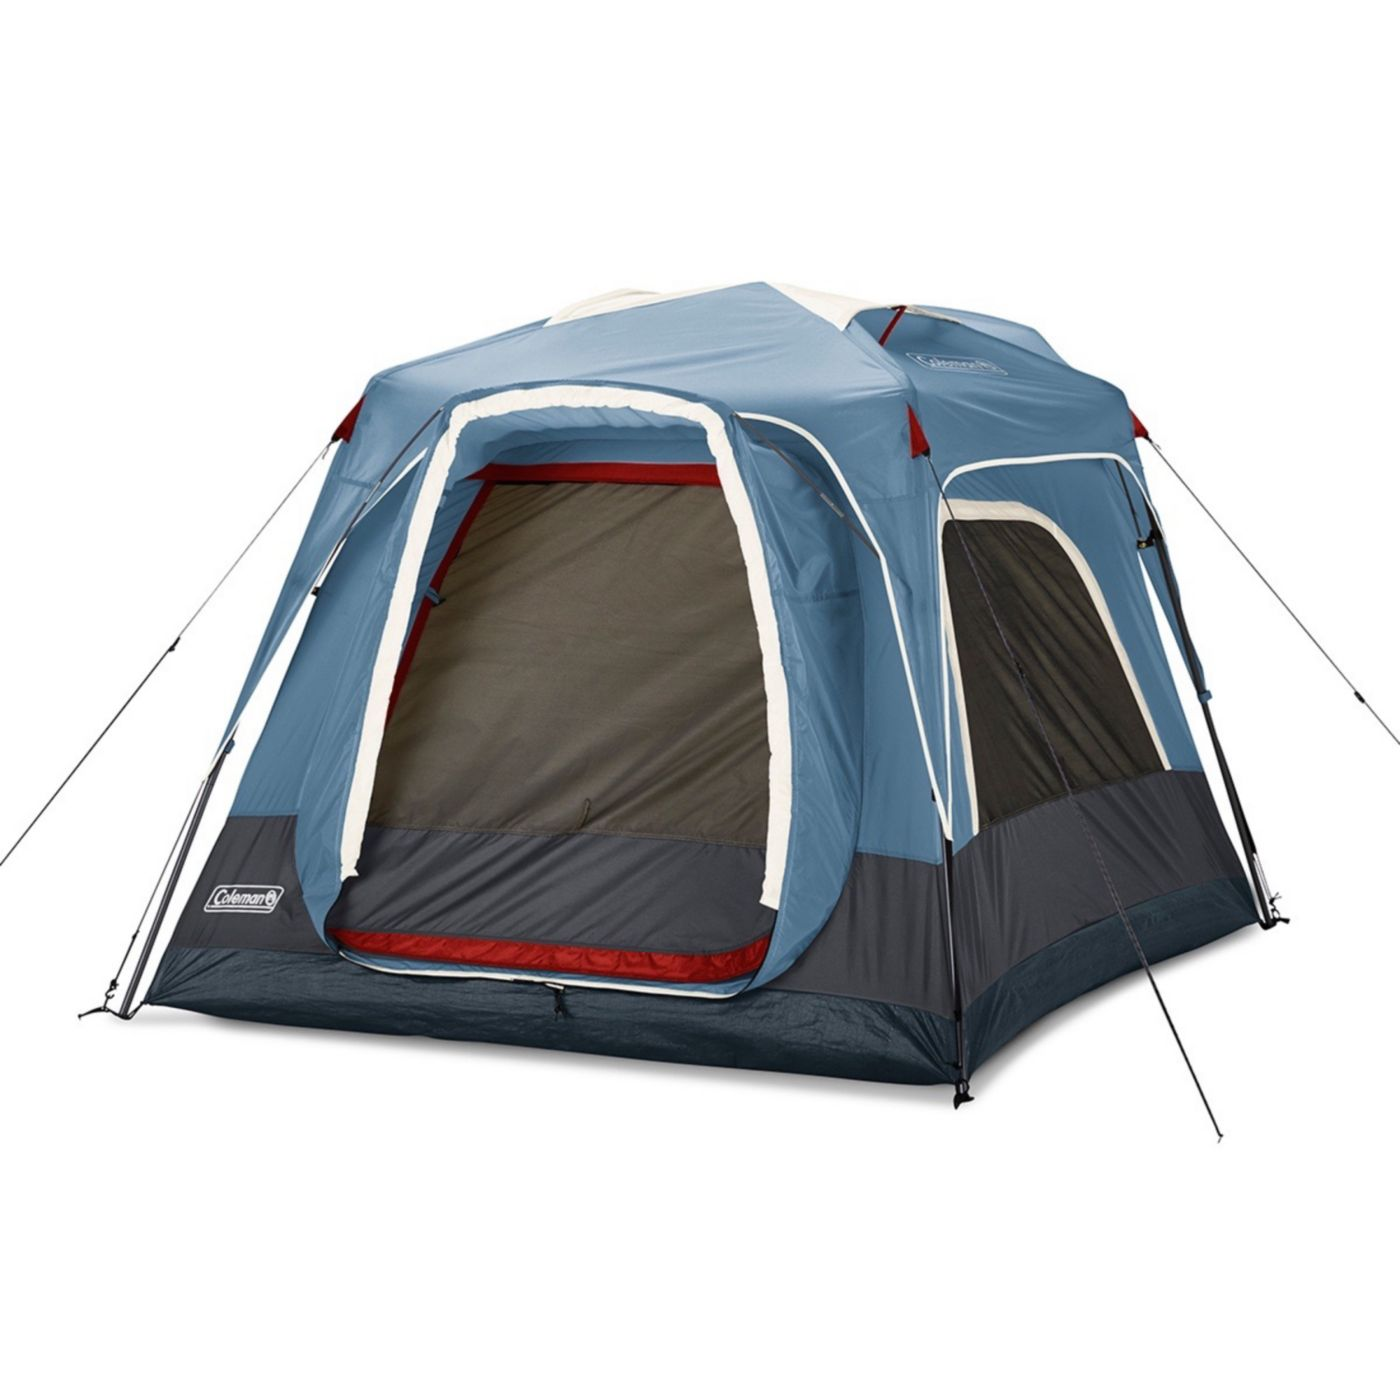 3-Person Connectable Tent with Fast Pitch Setup Blue  sc 1 st  Coleman & Coleman Tents u0026 Shelters | Coleman